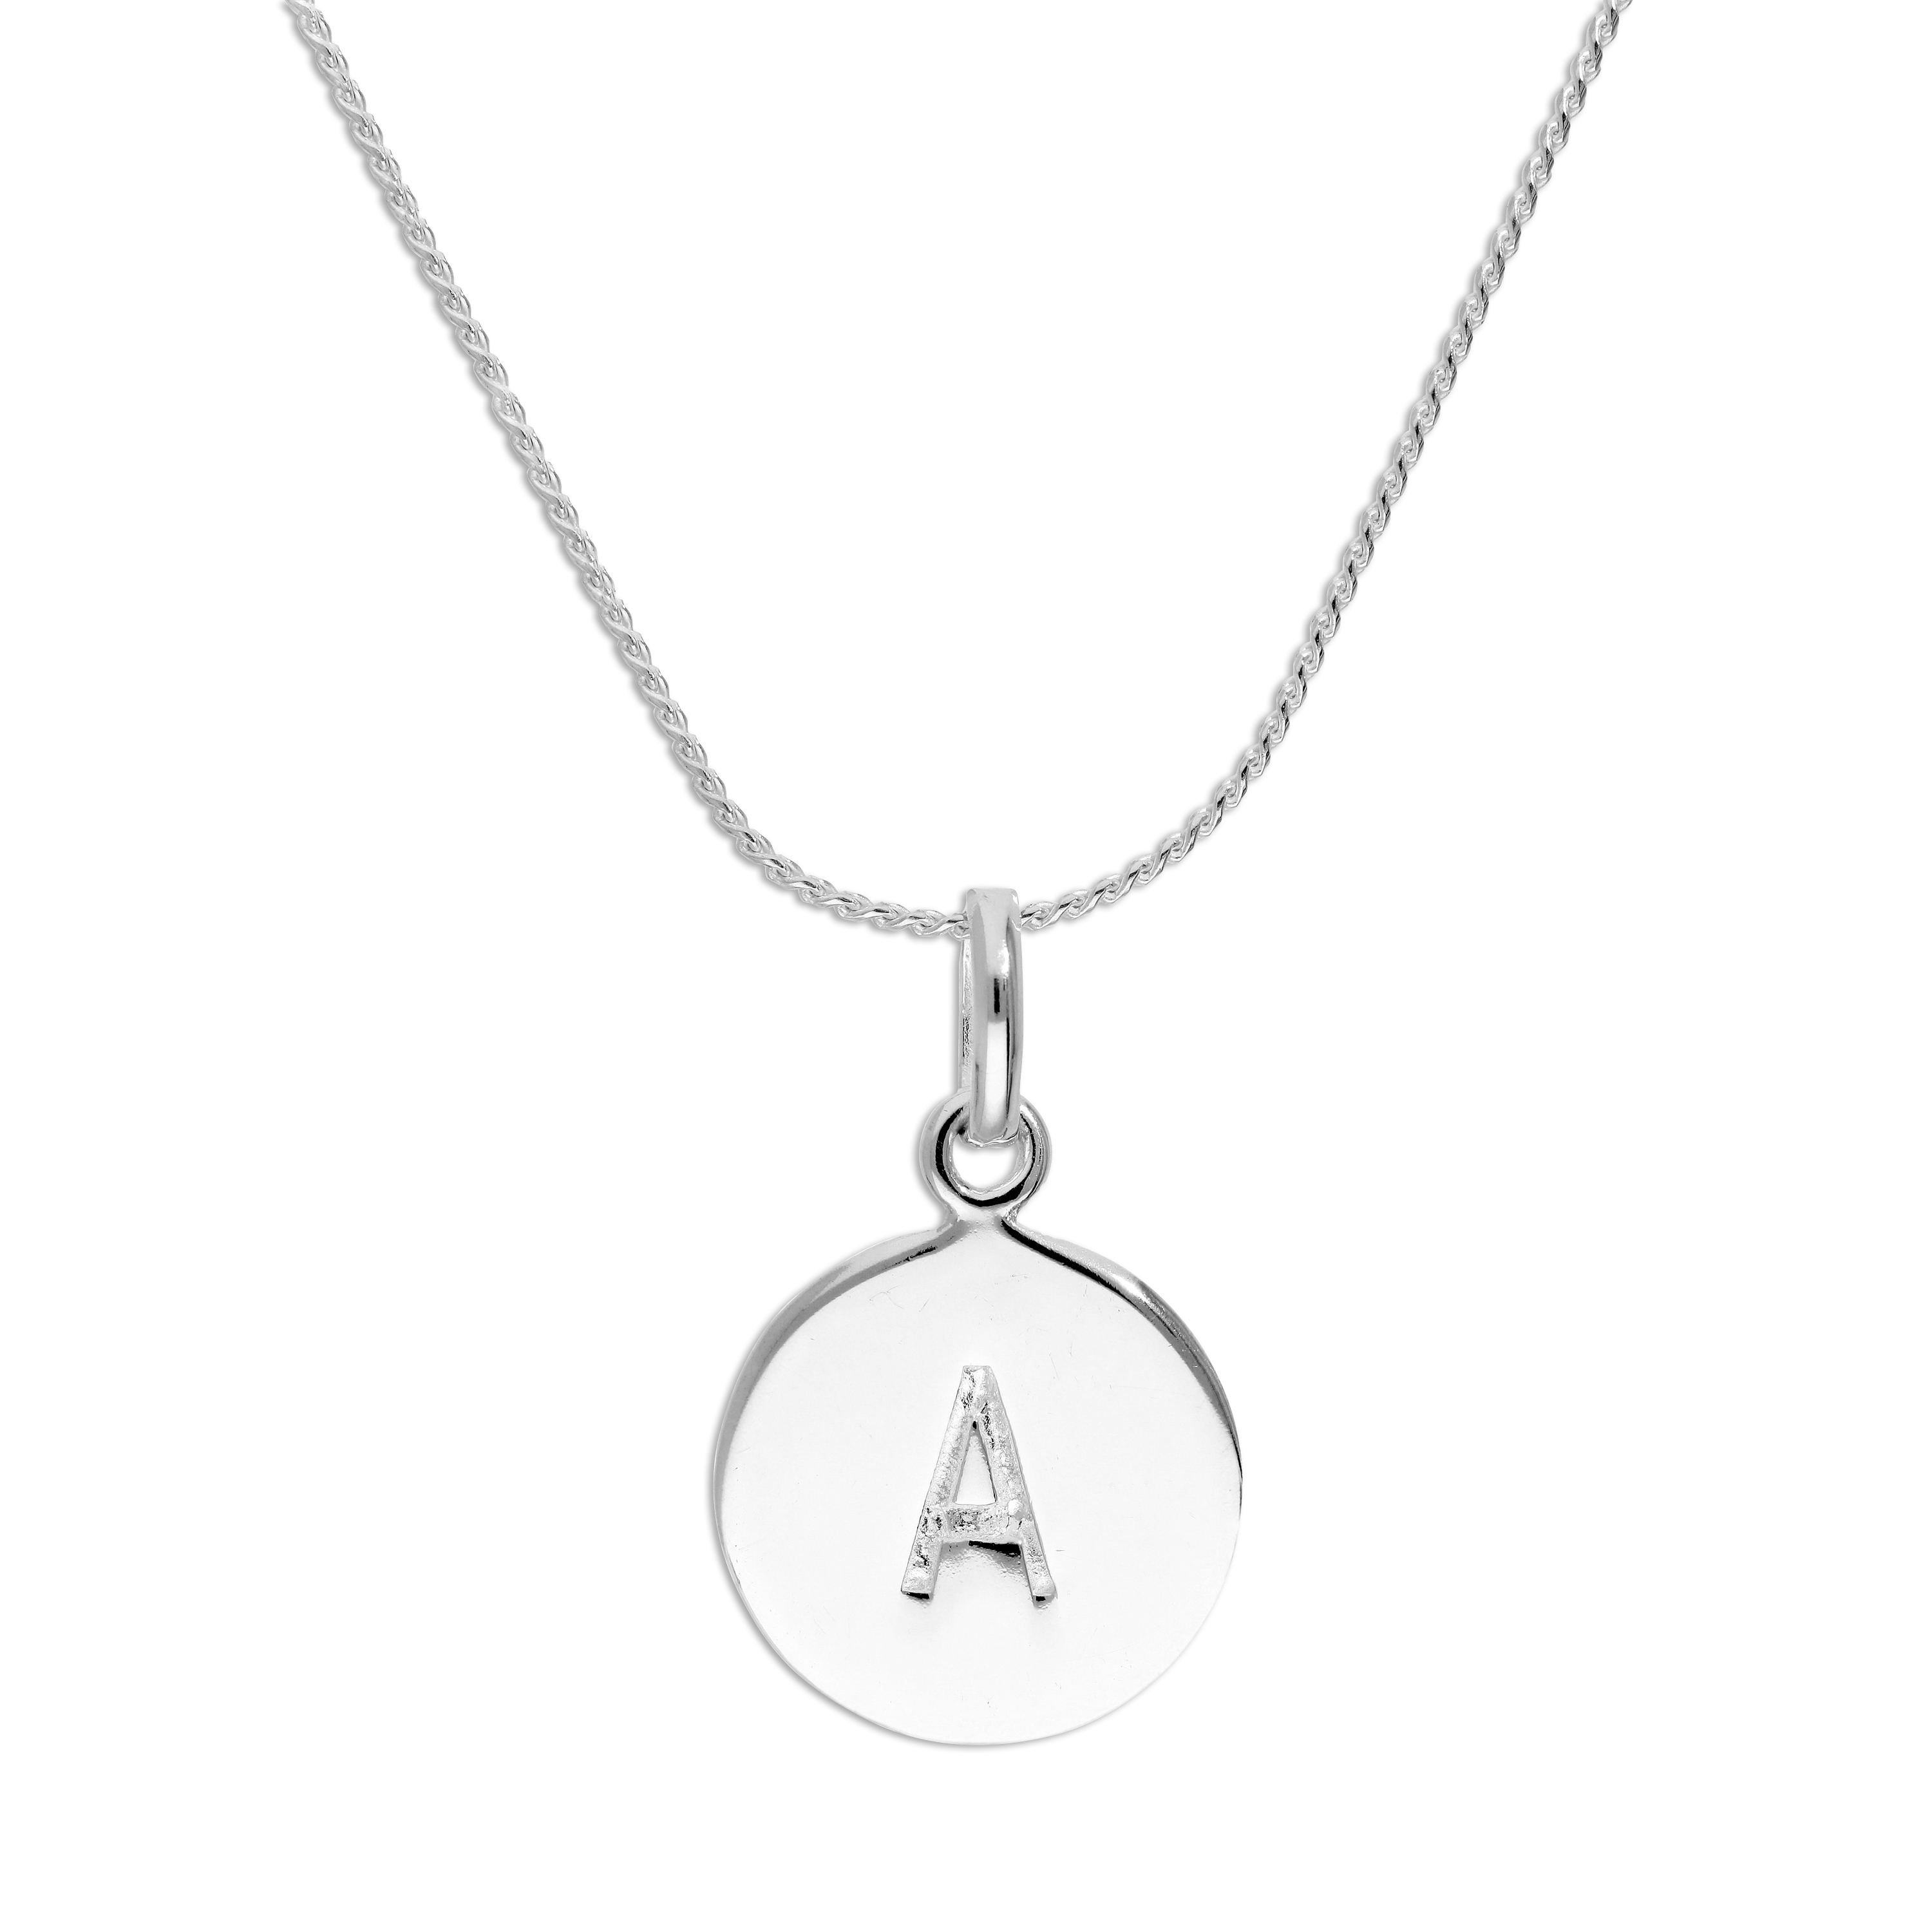 An image of Sterling Silver Initial Letter A Necklace 20 Inches Blue